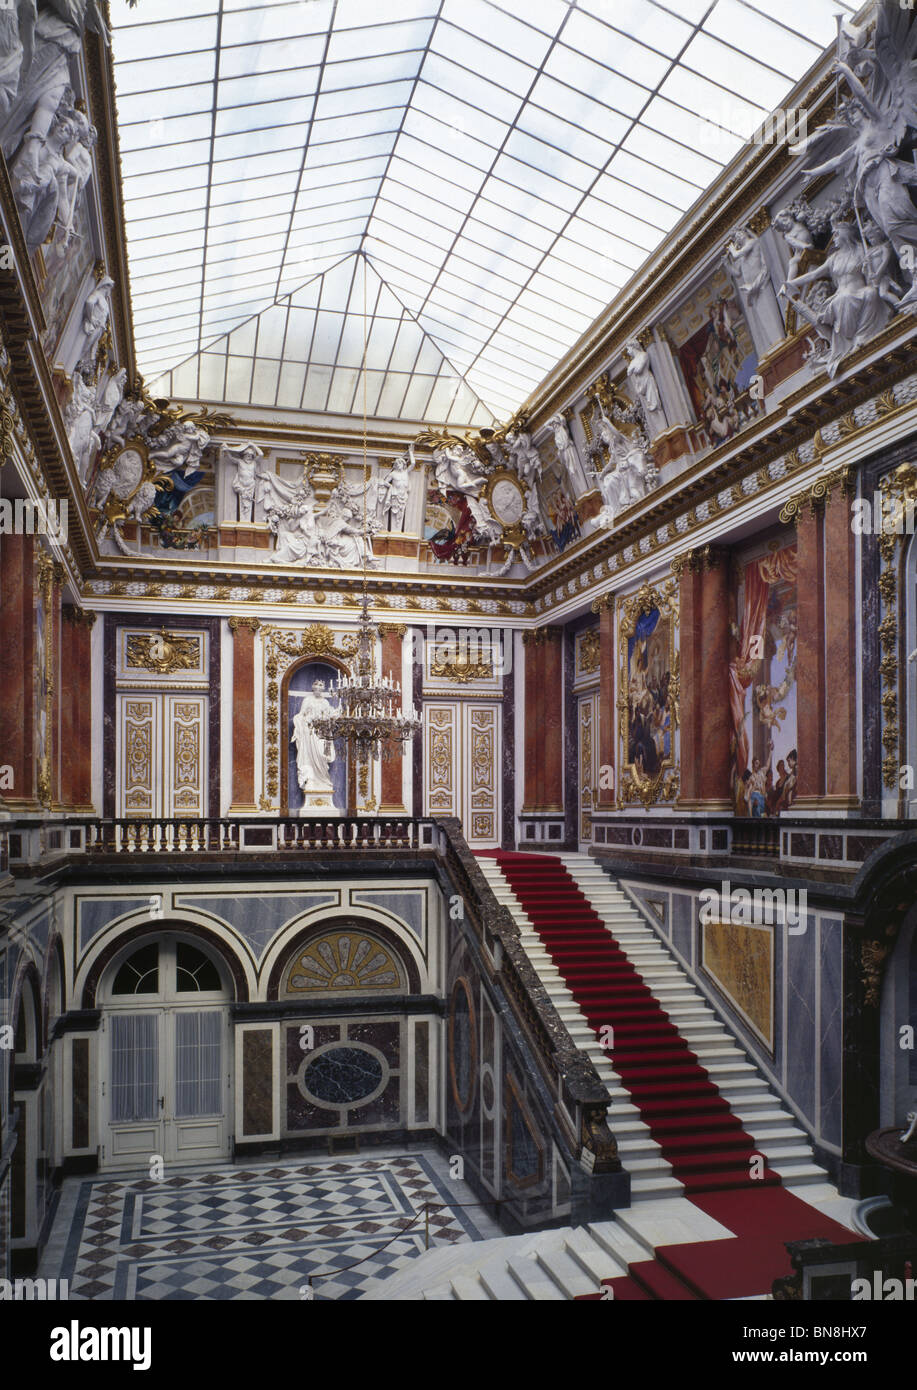 The Entrance Hall, Herrenchiemsee, Bavaria. Built by Mad Ludwig II of Bavaria 1878-1885, inspired by Versailles. - Stock Image